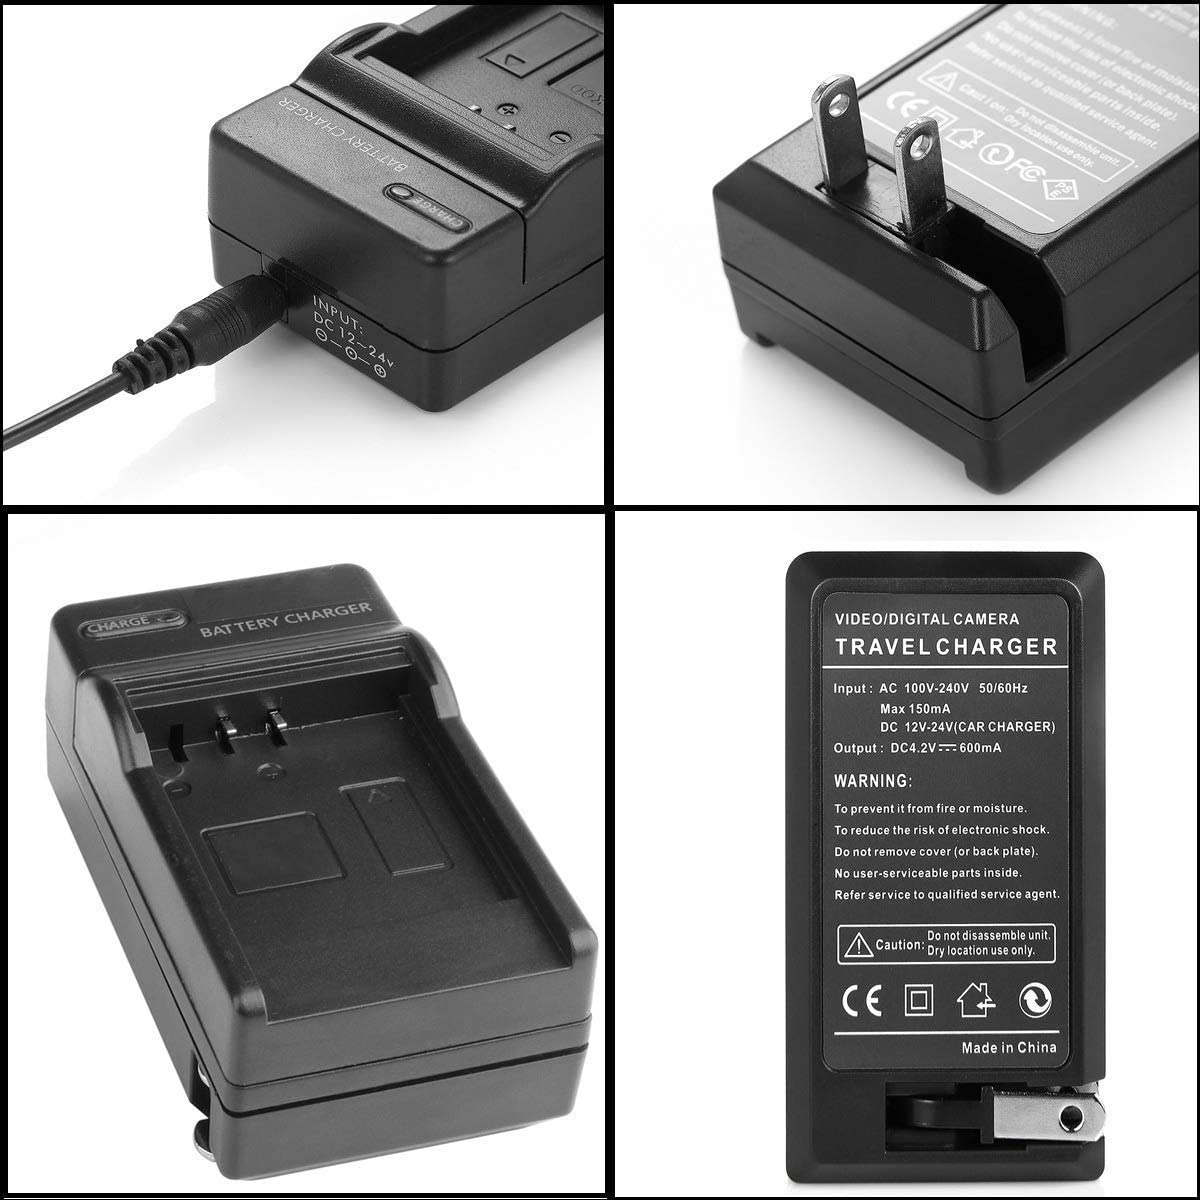 HDR-CX620E HDR-CX625E HDR-CX630VE Handycam Camcorder Battery Charger for Sony HDR-CX610E